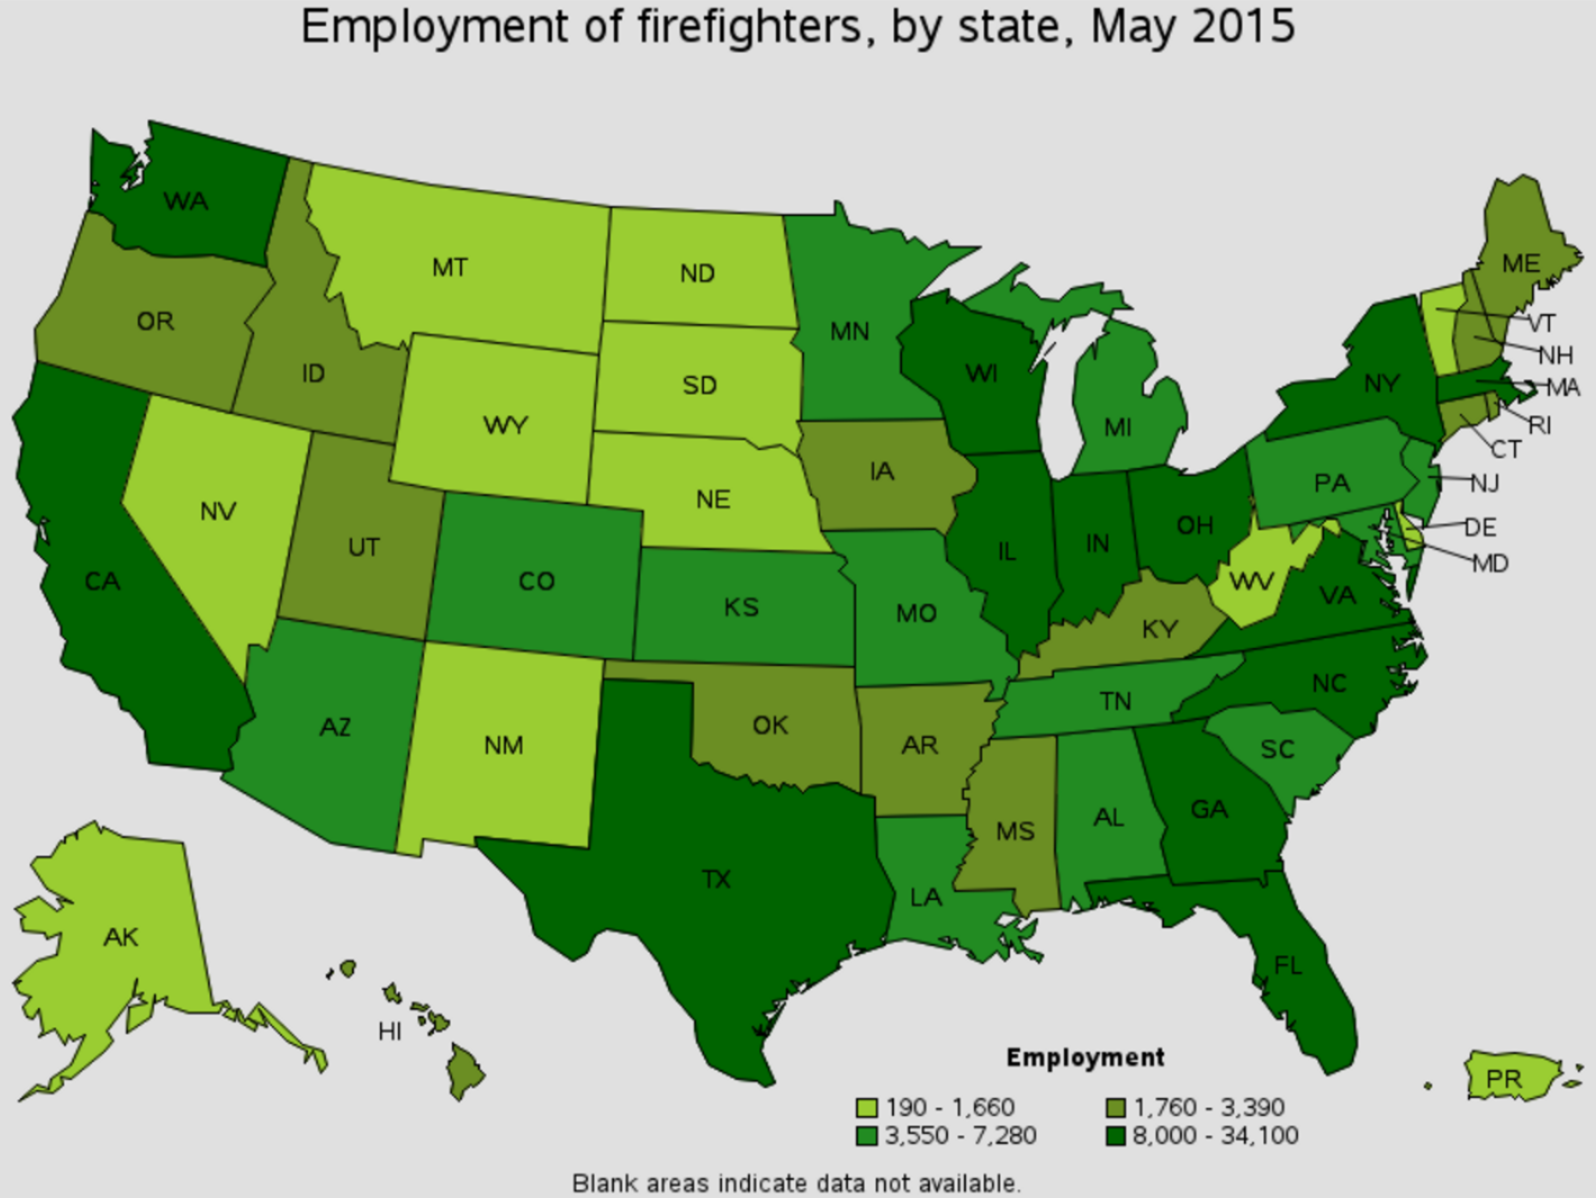 firefighter job outlook by state Whitmore Lake Michigan